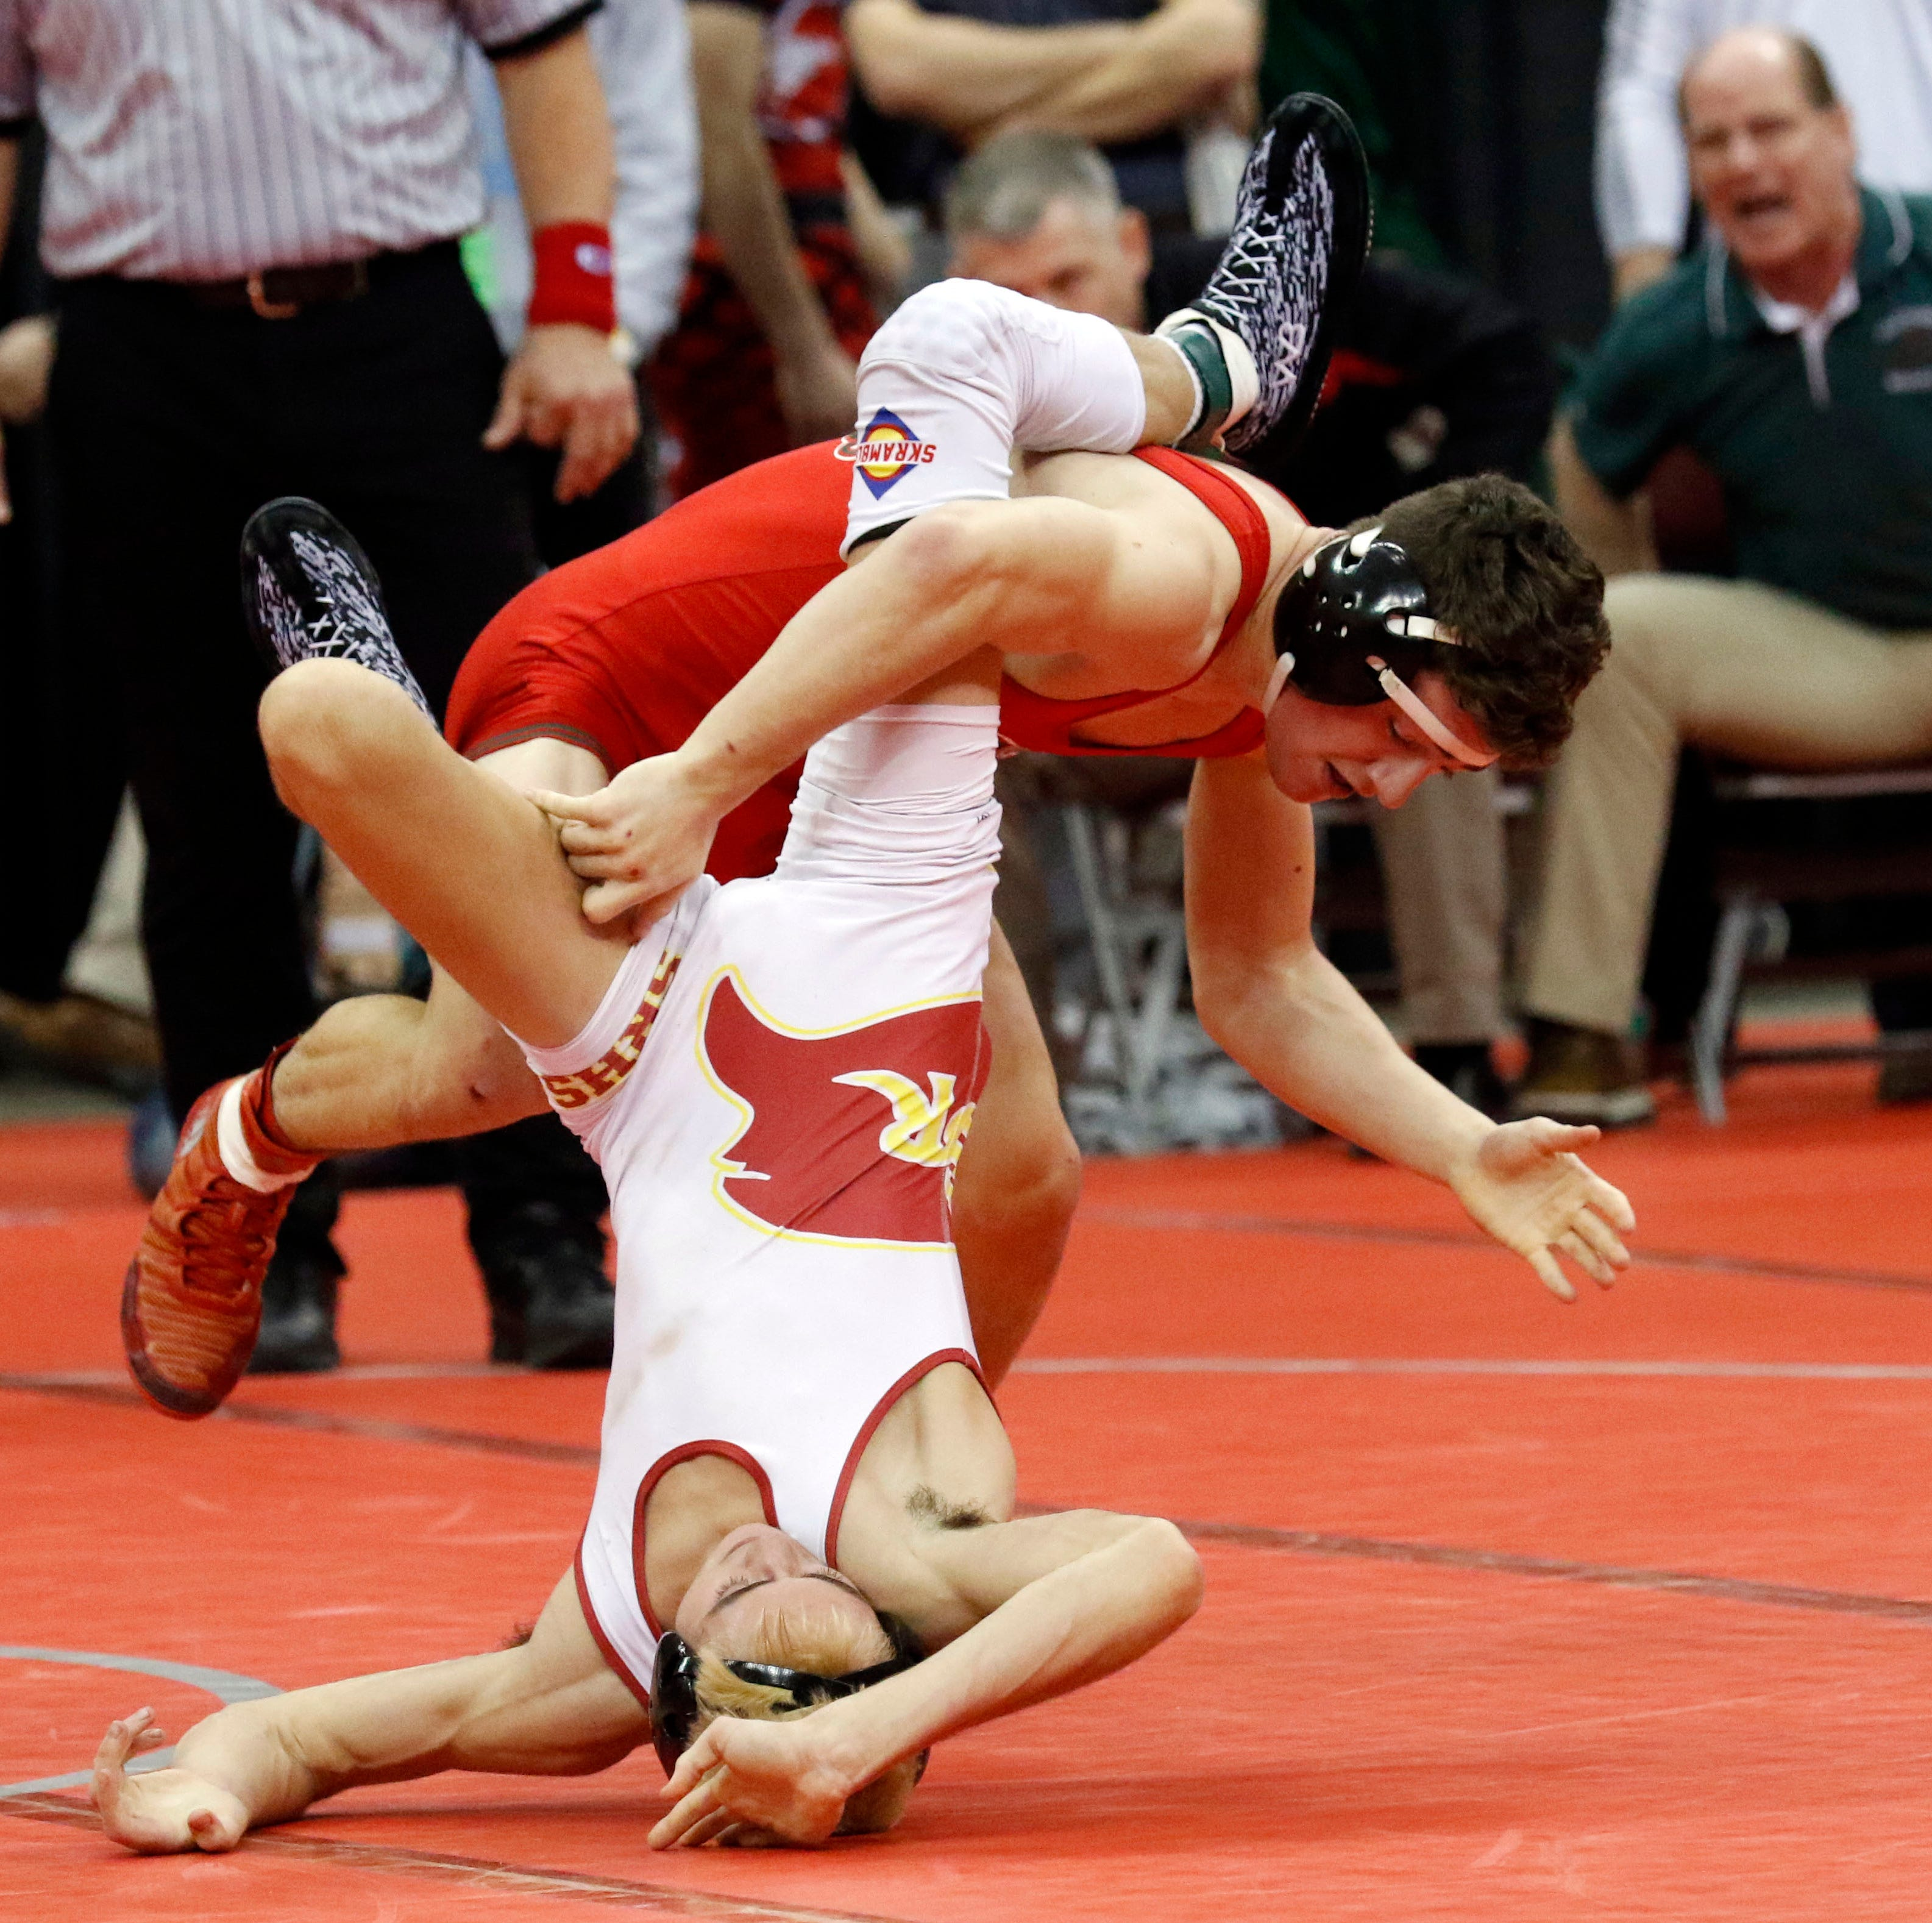 D'Emilio takes down top spot in Messenger wrestling lineup